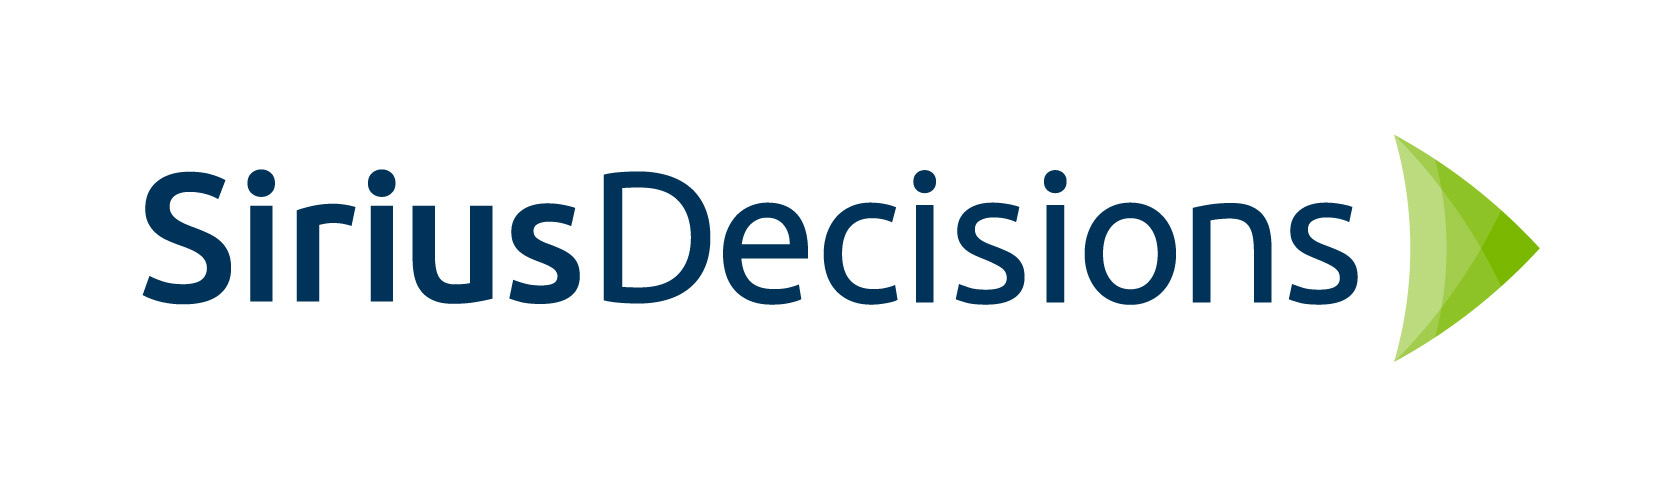 Sirius-Decisions-Logo-San-Diego-AMA-Art-of-Marketing-Conference-2015